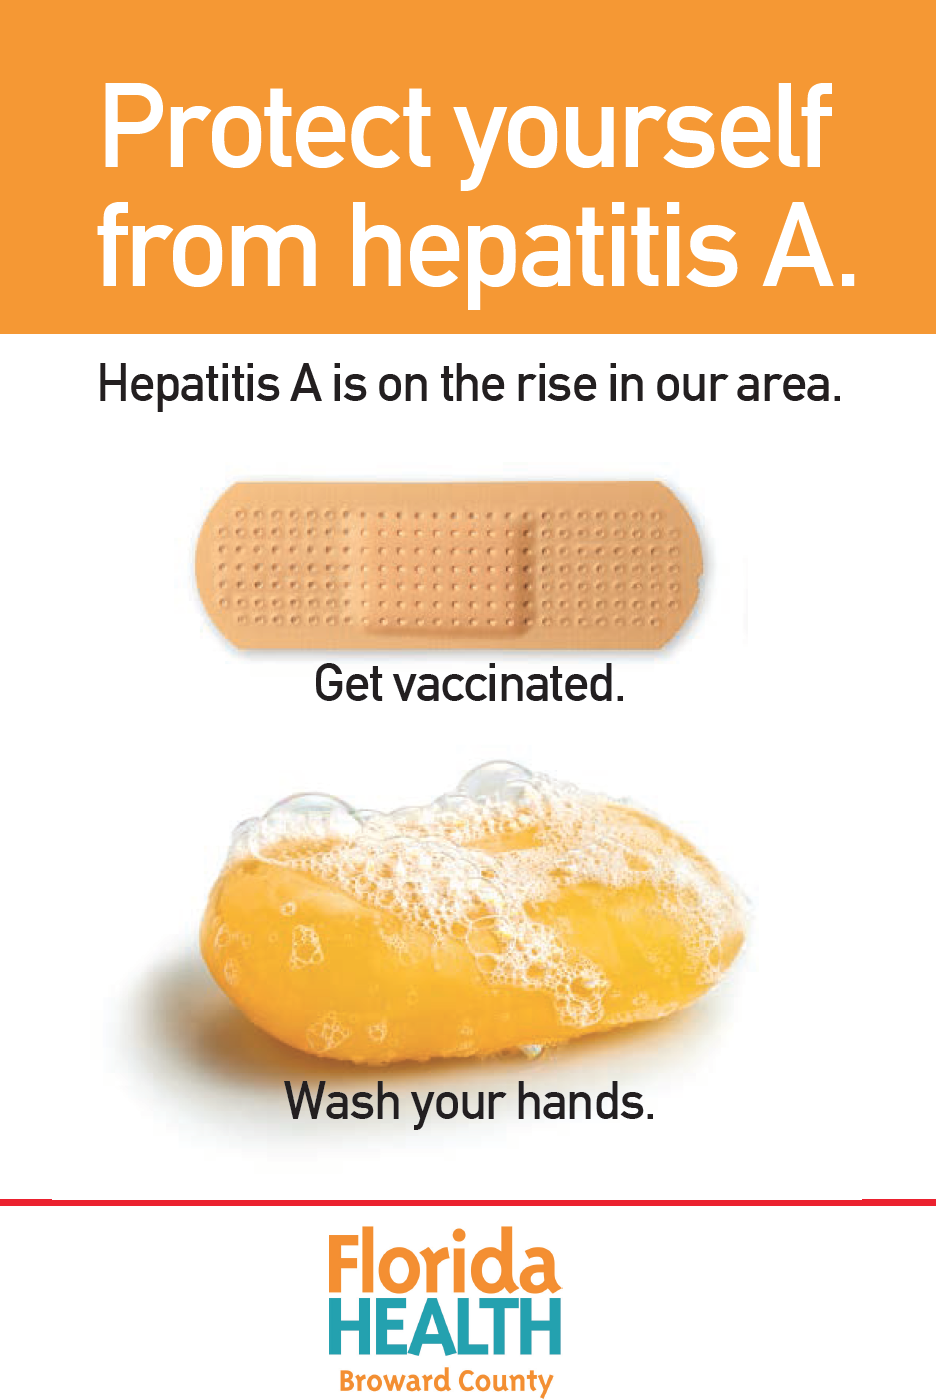 Hepatitis A is on the rise. See information on clickthrough page for prevention.